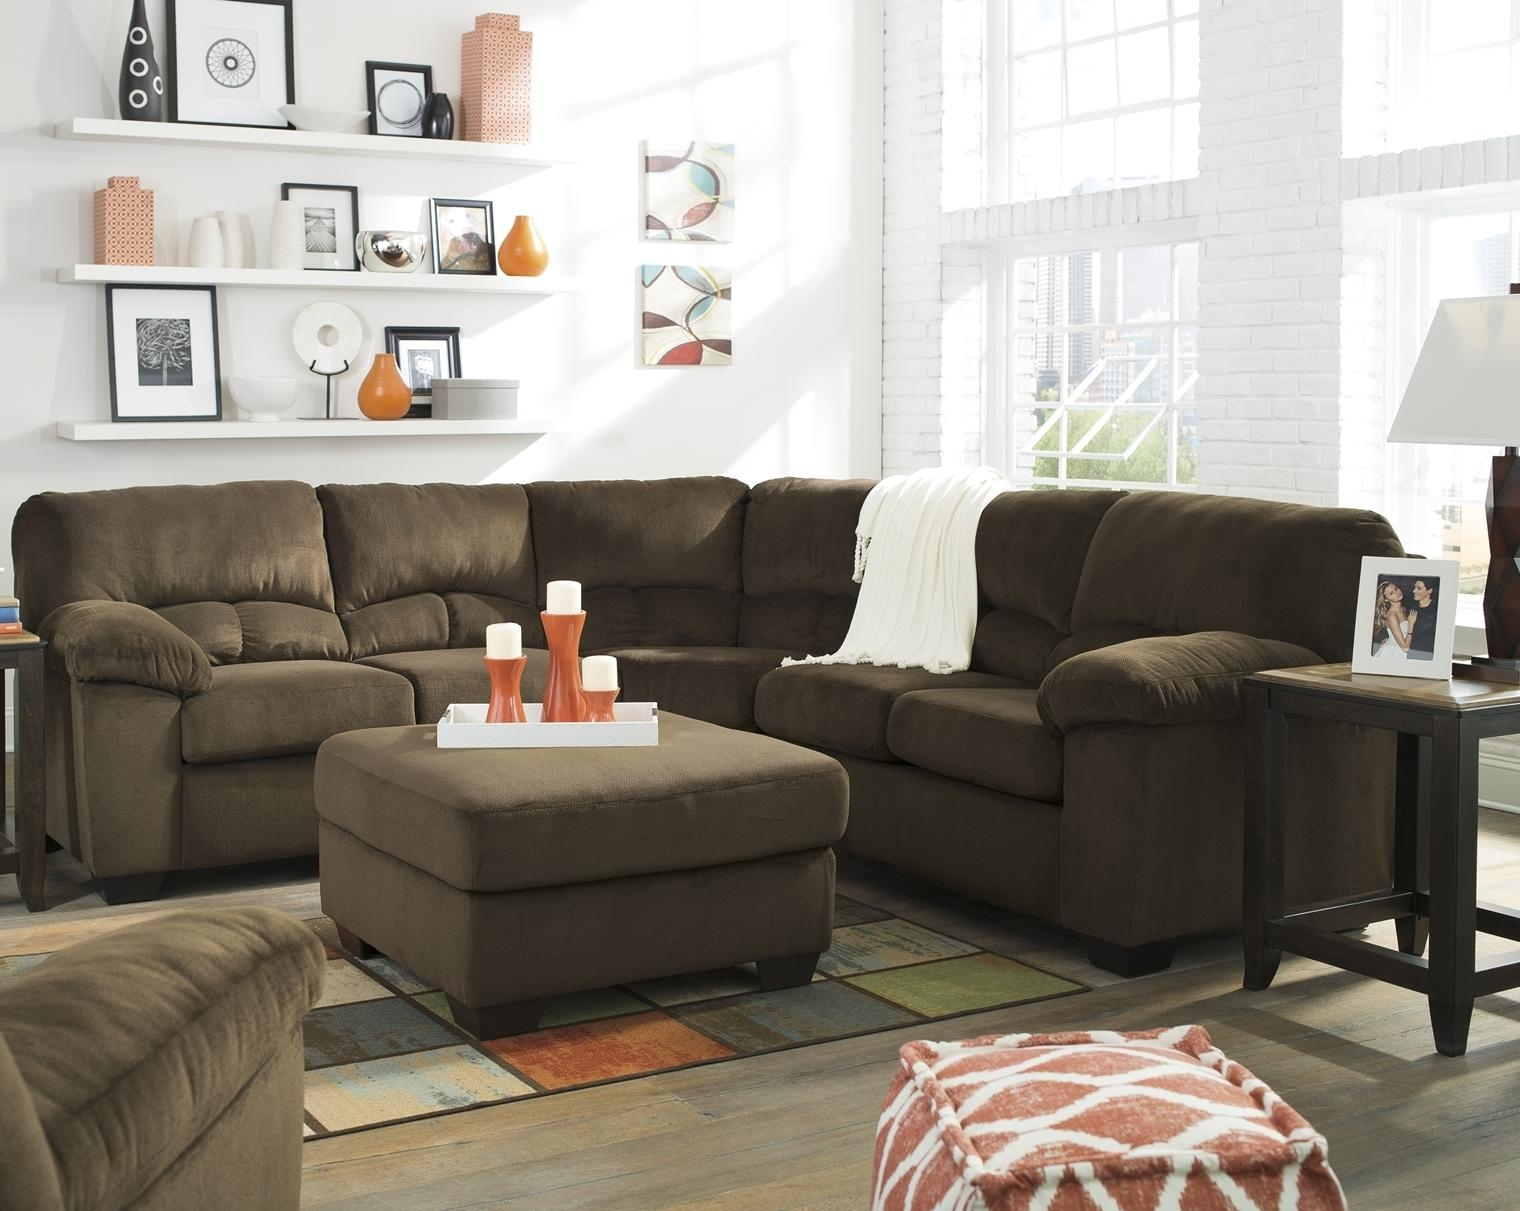 Sectional Sofas Living Room – Designer Furniture 4 Less Inside Retro Sectional Couch (View 7 of 20)